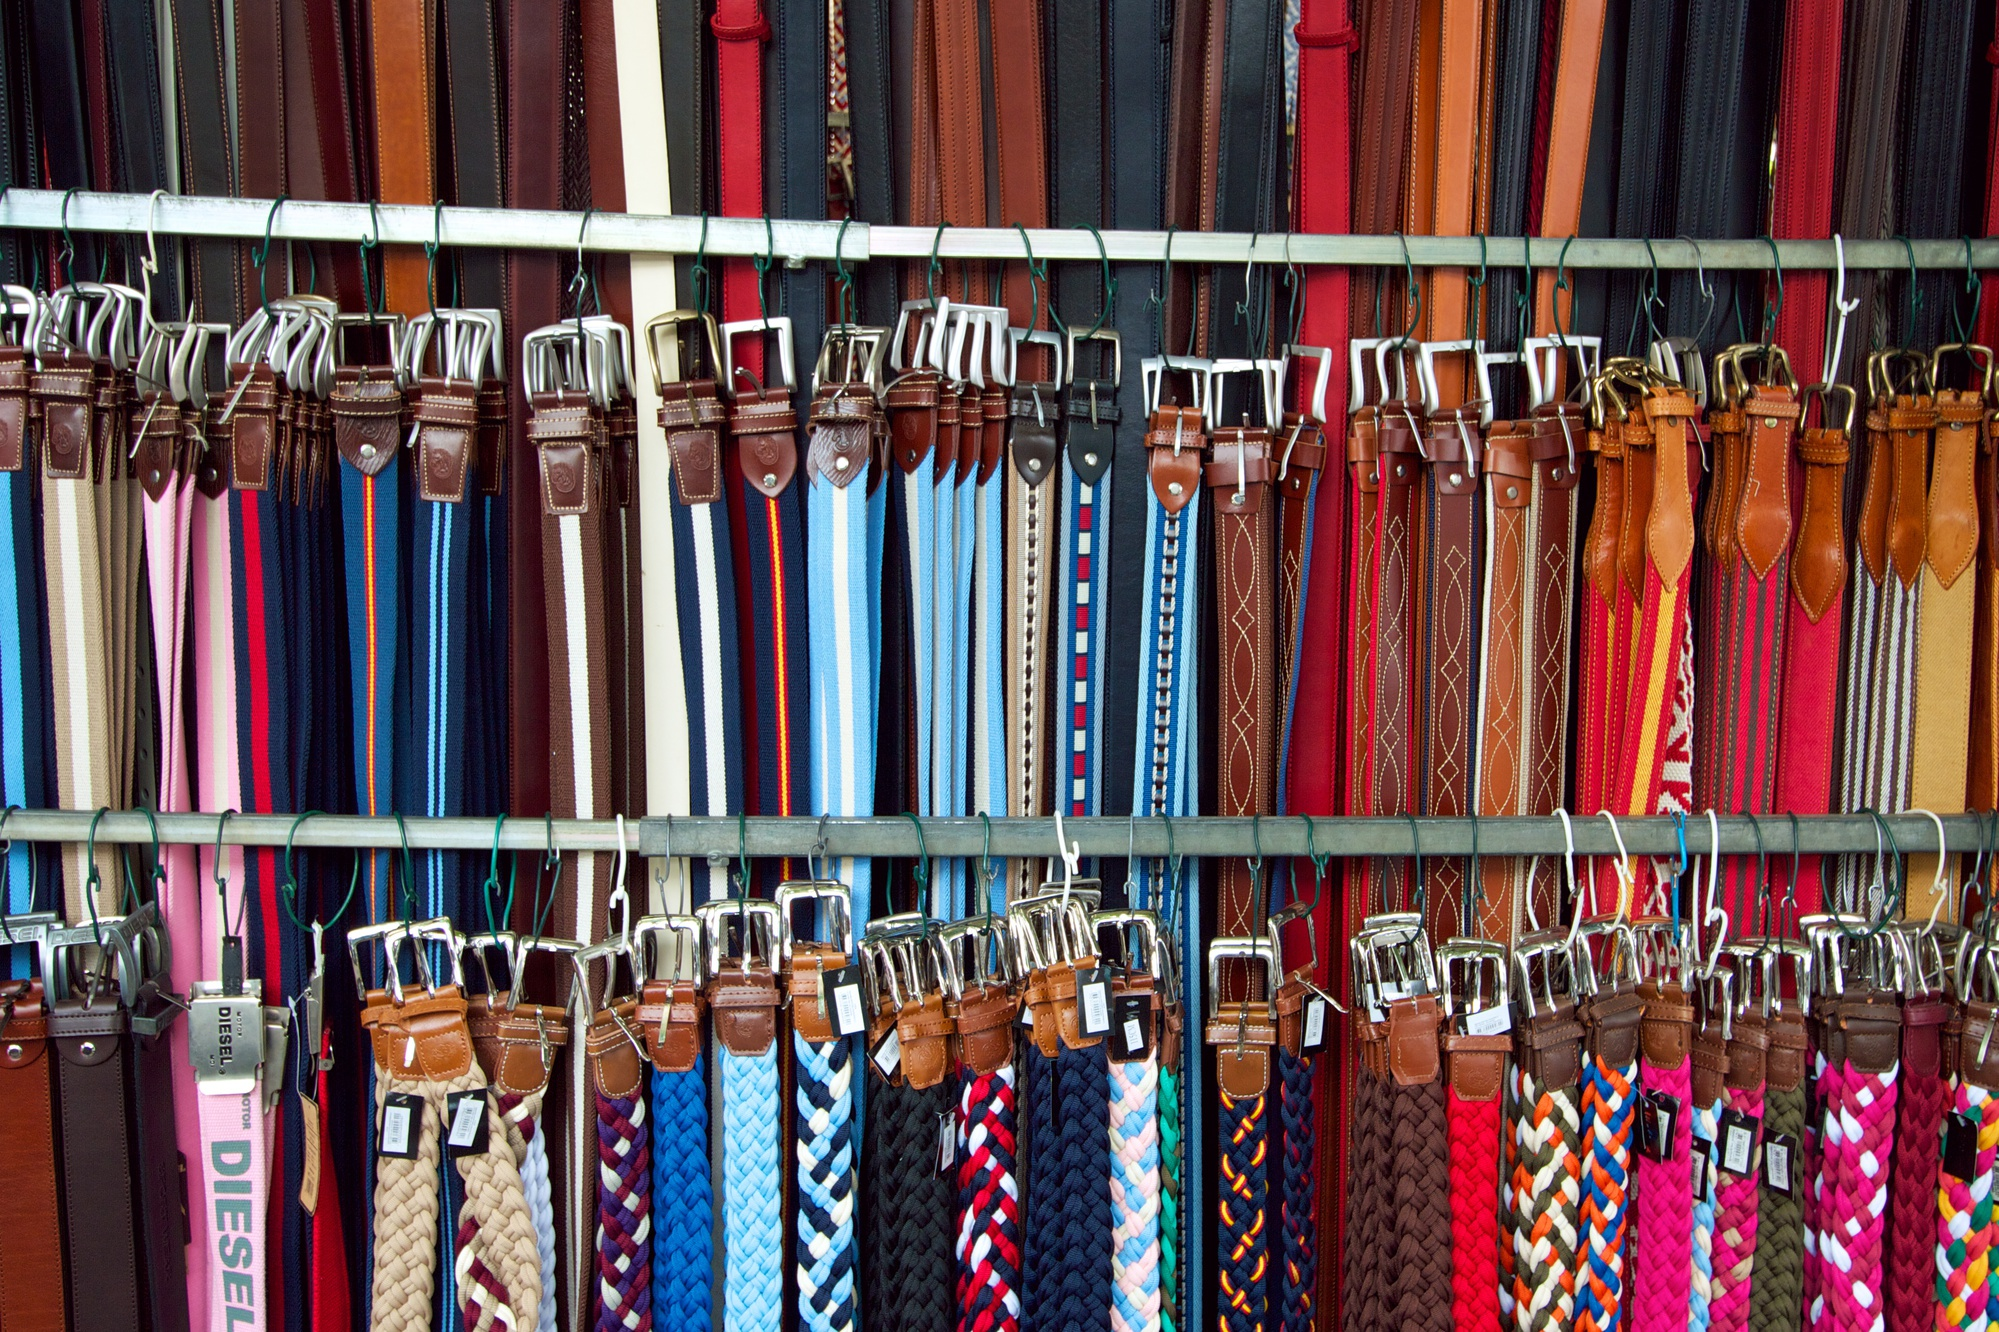 3 rows of belts with some interesting paterns